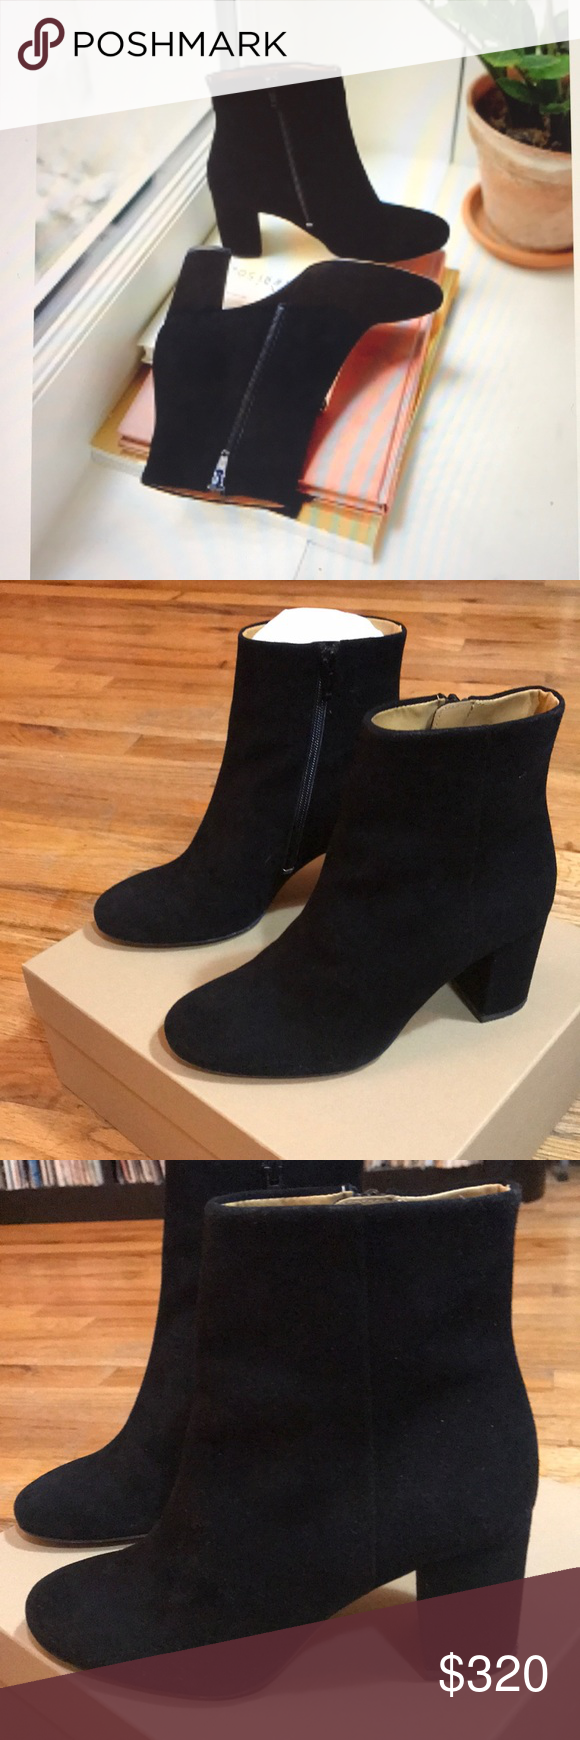 1c50a6fb36e7 SEZANE LEA boots. Worn once. Excellent condition. Size 6. Size 36 French  size. Classic black boots. Sold out in this style. Sezane Shoes Ankle Boots  & ...